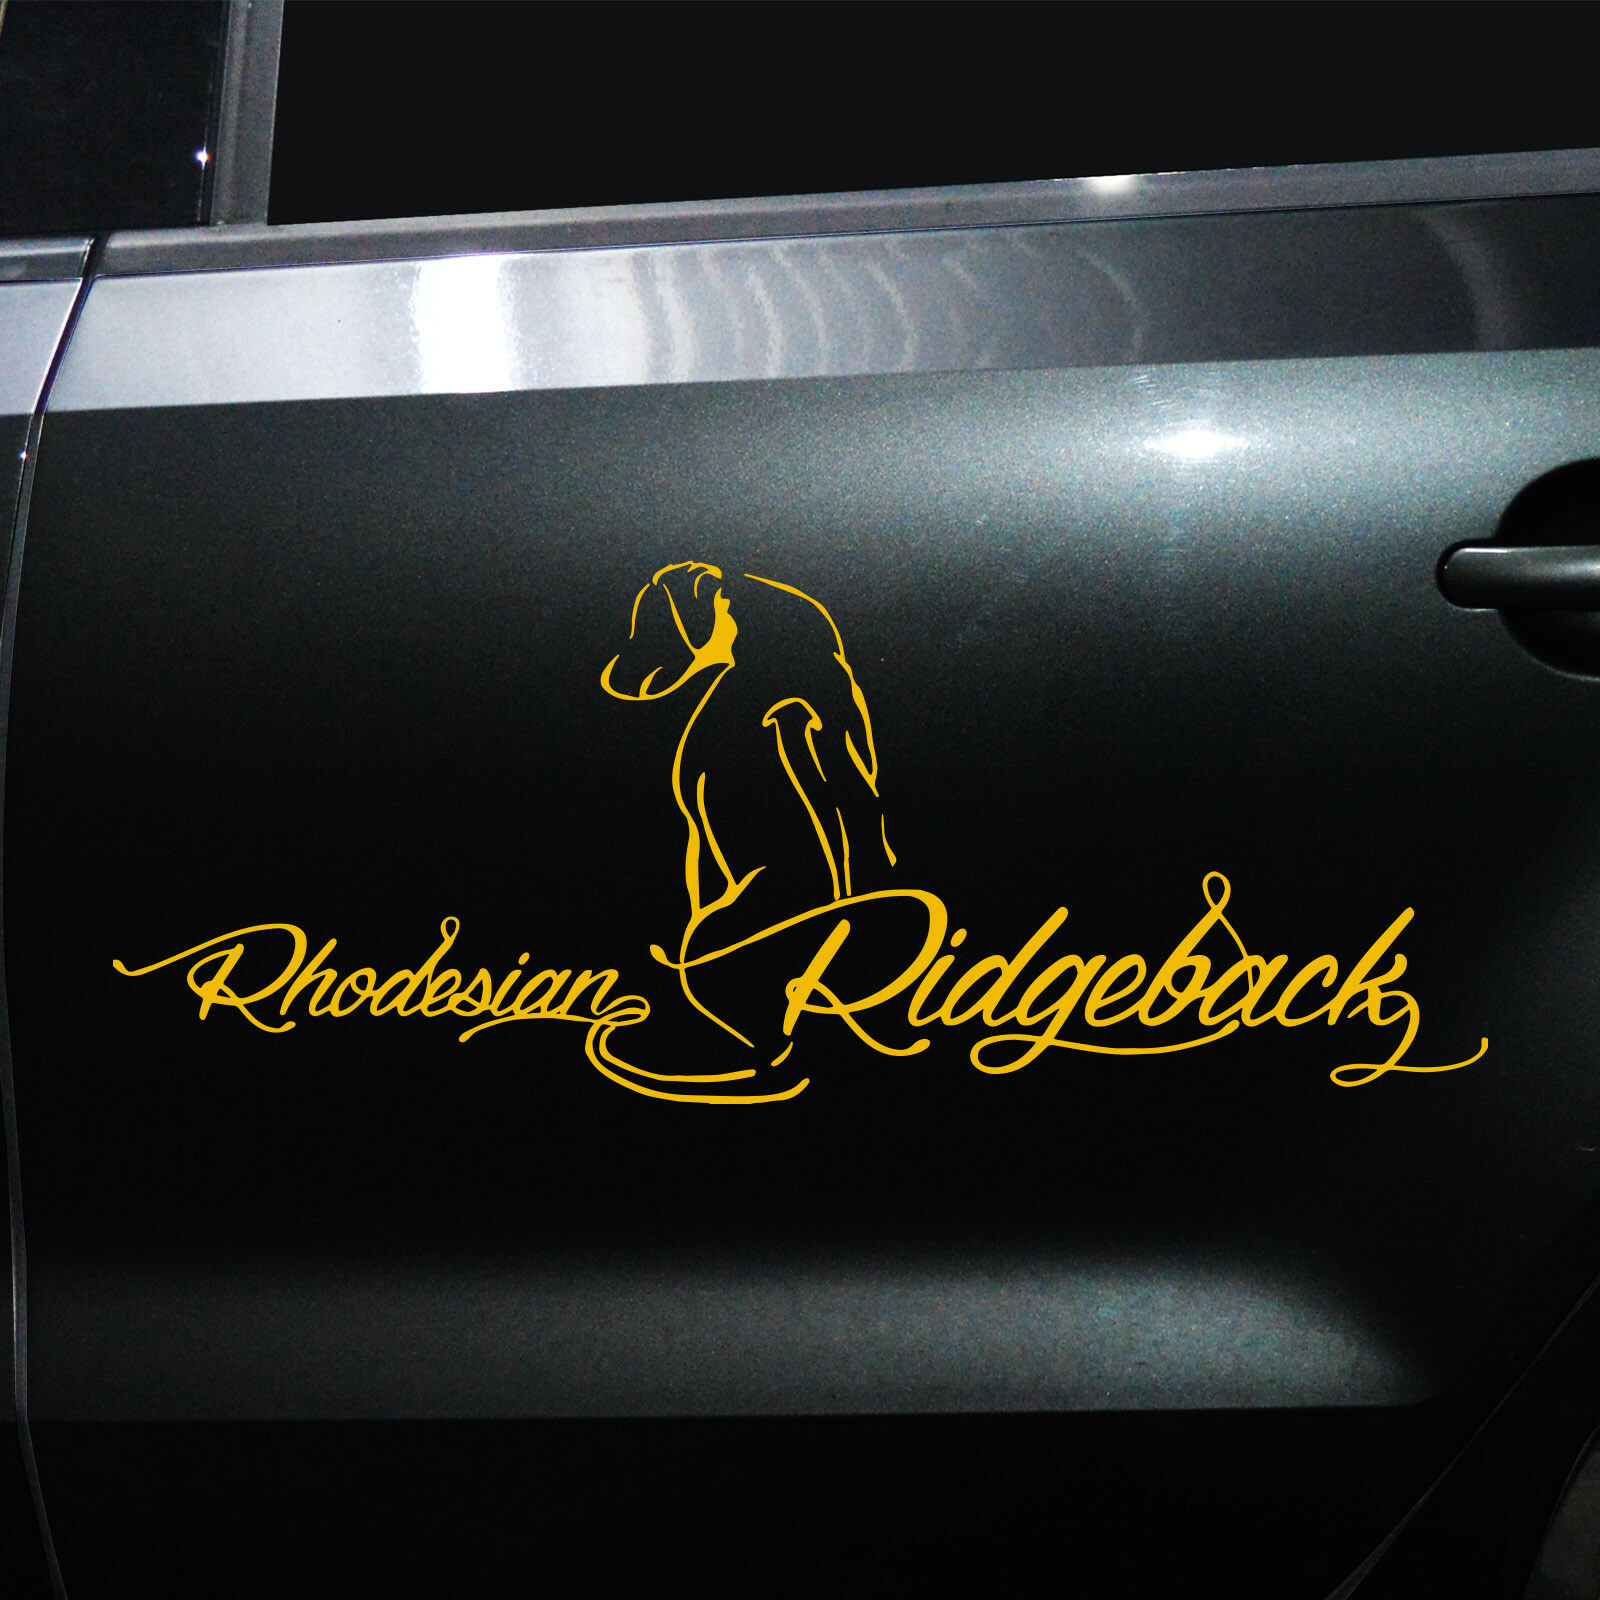 autoaufkleber rhodesian ridgeback m2 aufkleber f rs auto. Black Bedroom Furniture Sets. Home Design Ideas